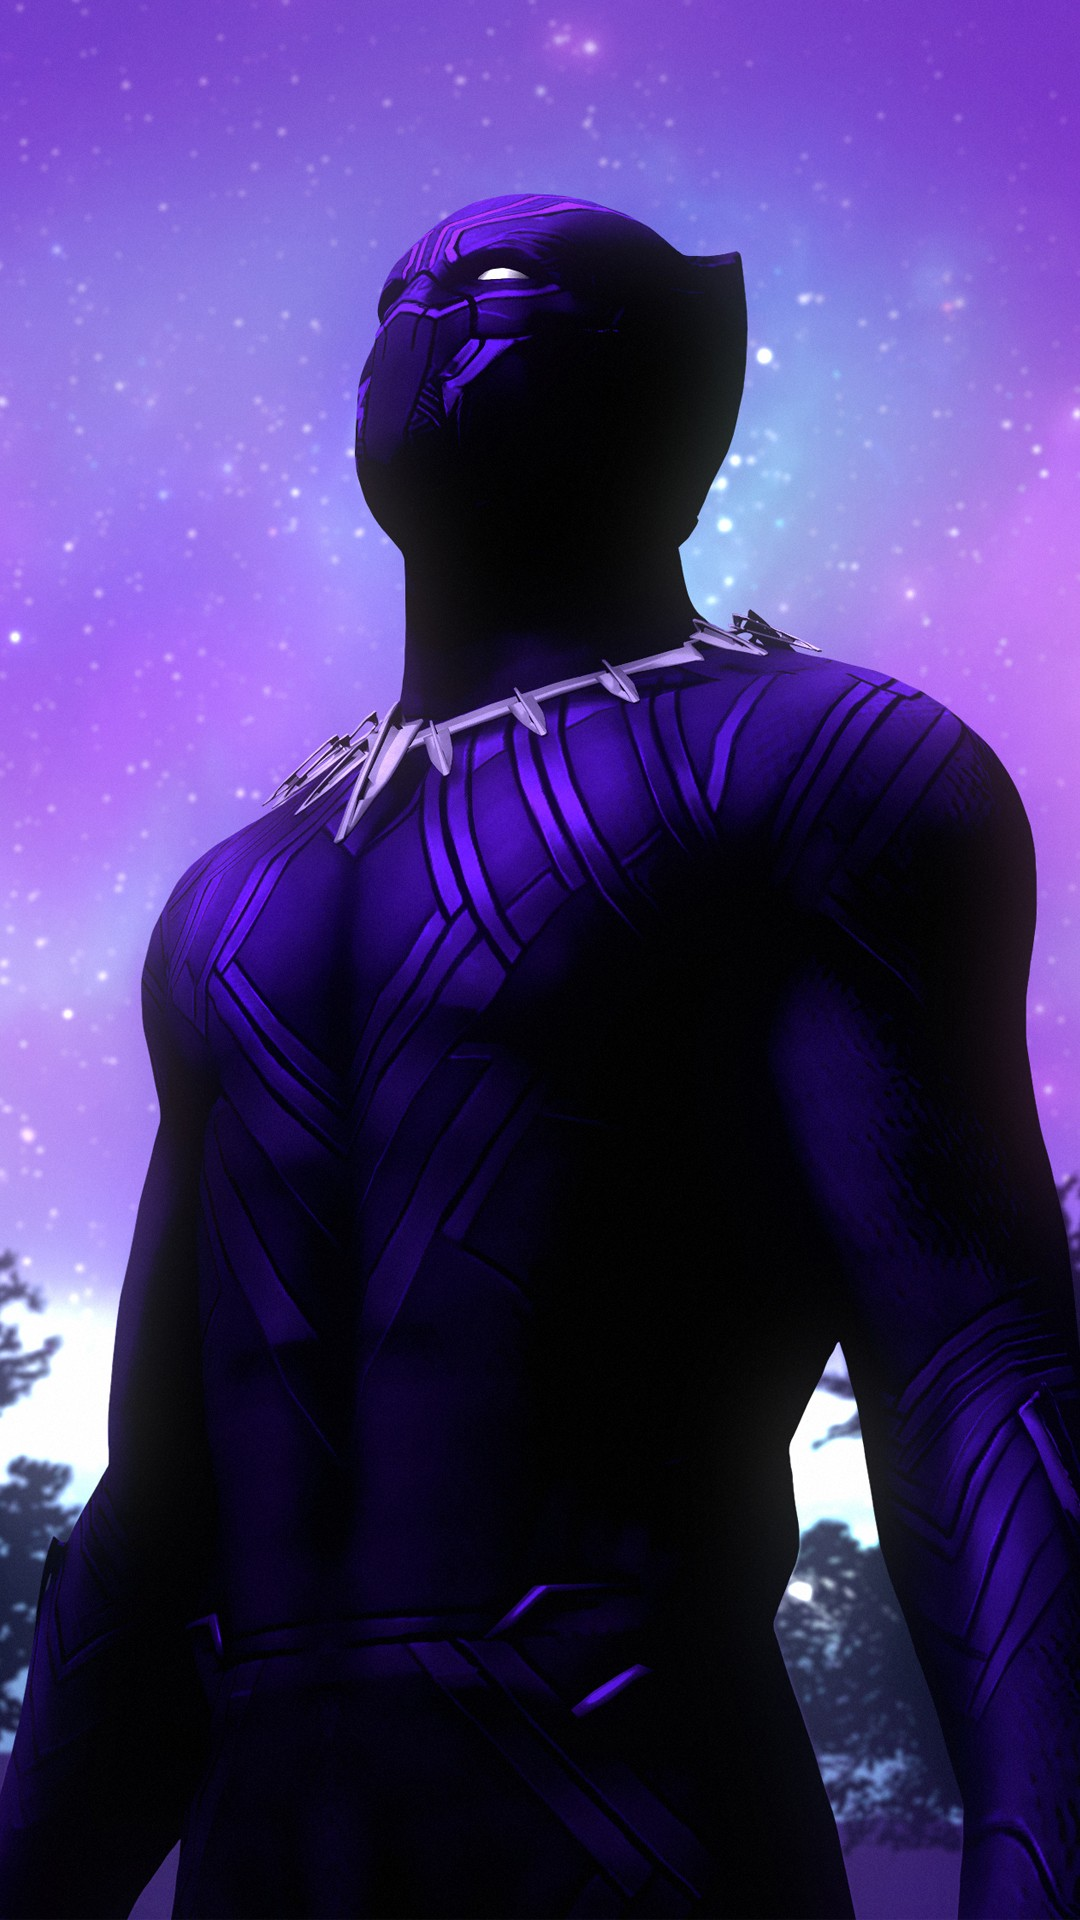 Black Panther Wallpaper Iphone 4k 1080x1920 Wallpaper Teahub Io